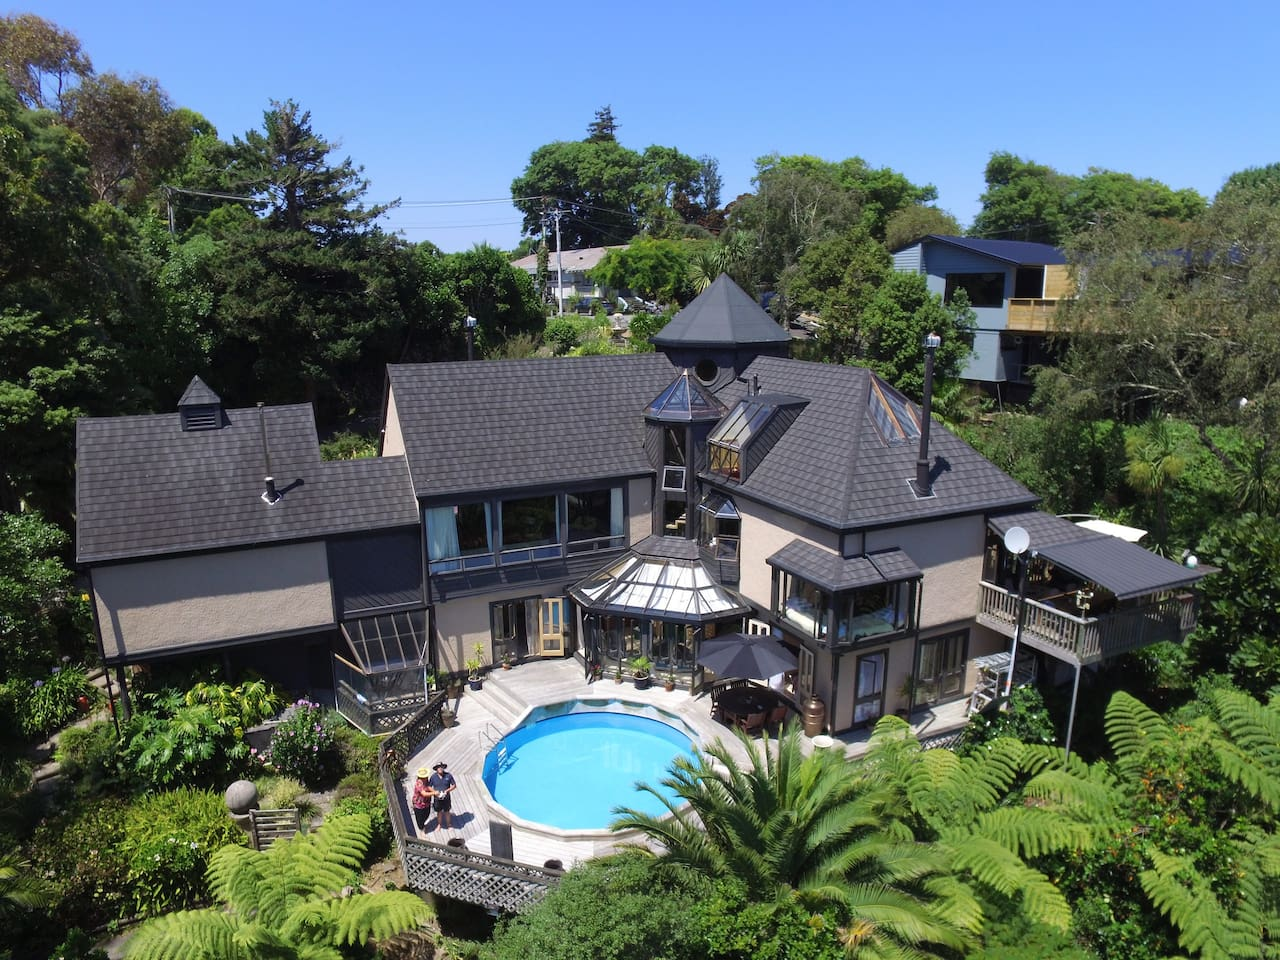 A birds eye view of Tulloch Manor